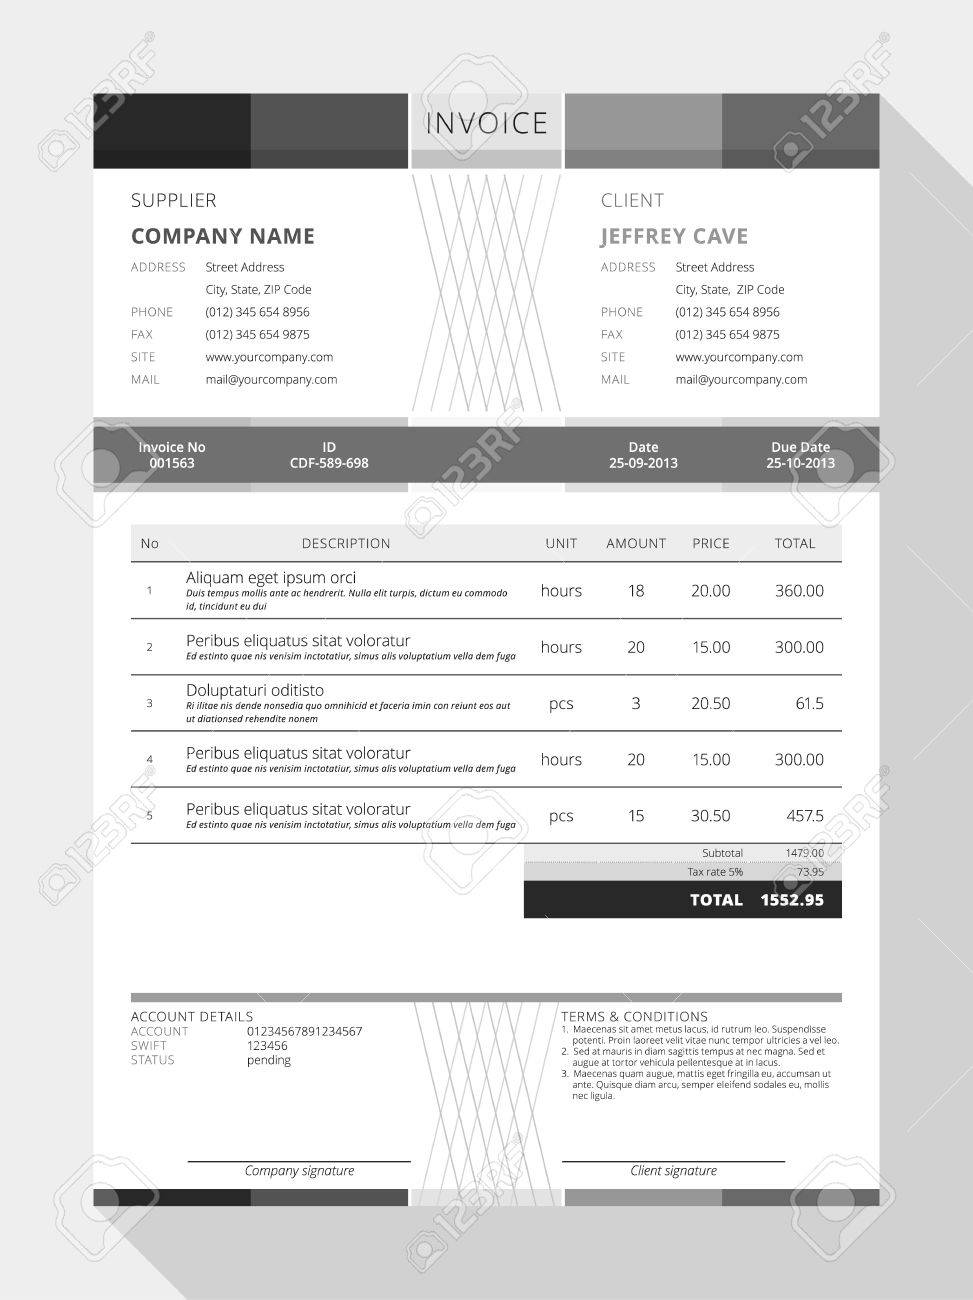 Pxworkoutfreeus  Inspiring Design An Invoice  Professional Graphic Design Invoice  With Fascinating Vector Customizable Invoice Form Template Design Vector   Design An Invoice With Delightful Sample Letter Of Acknowledgement Of Receipt Also What You Can Claim On Tax Without Receipts In Addition View Trip Electronic Ticket Receipt And Money Receipt Word Format As Well As Rent Receipt Word Format Additionally Bearville Receipt Code From Happytomco With Pxworkoutfreeus  Fascinating Design An Invoice  Professional Graphic Design Invoice  With Delightful Vector Customizable Invoice Form Template Design Vector   Design An Invoice And Inspiring Sample Letter Of Acknowledgement Of Receipt Also What You Can Claim On Tax Without Receipts In Addition View Trip Electronic Ticket Receipt From Happytomco